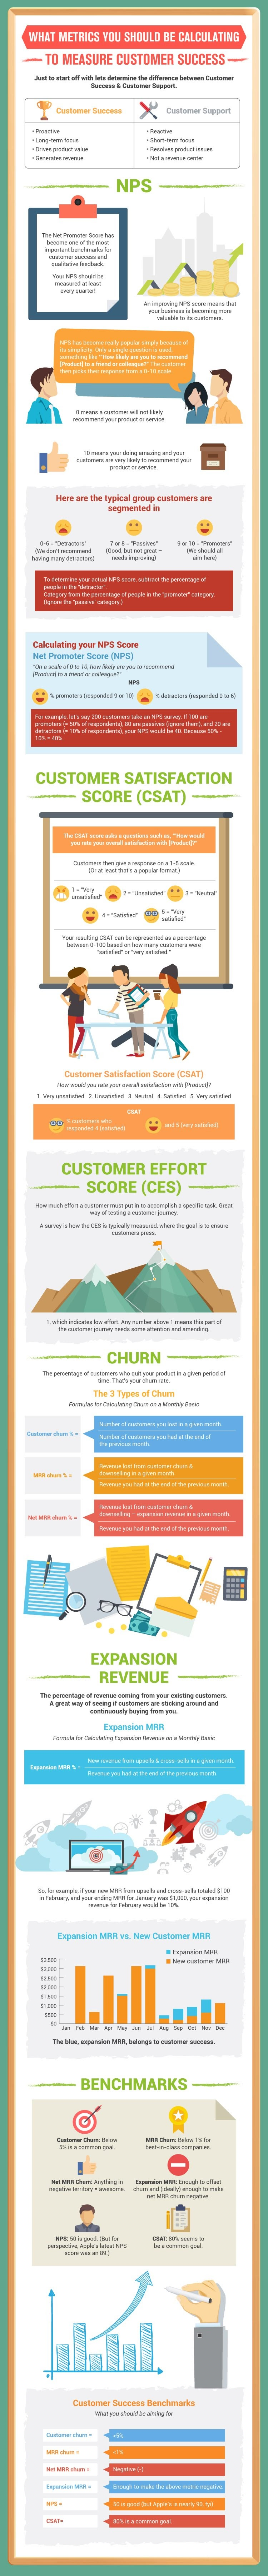 What Metrics You Should Be Calculate To Measure Customer Success